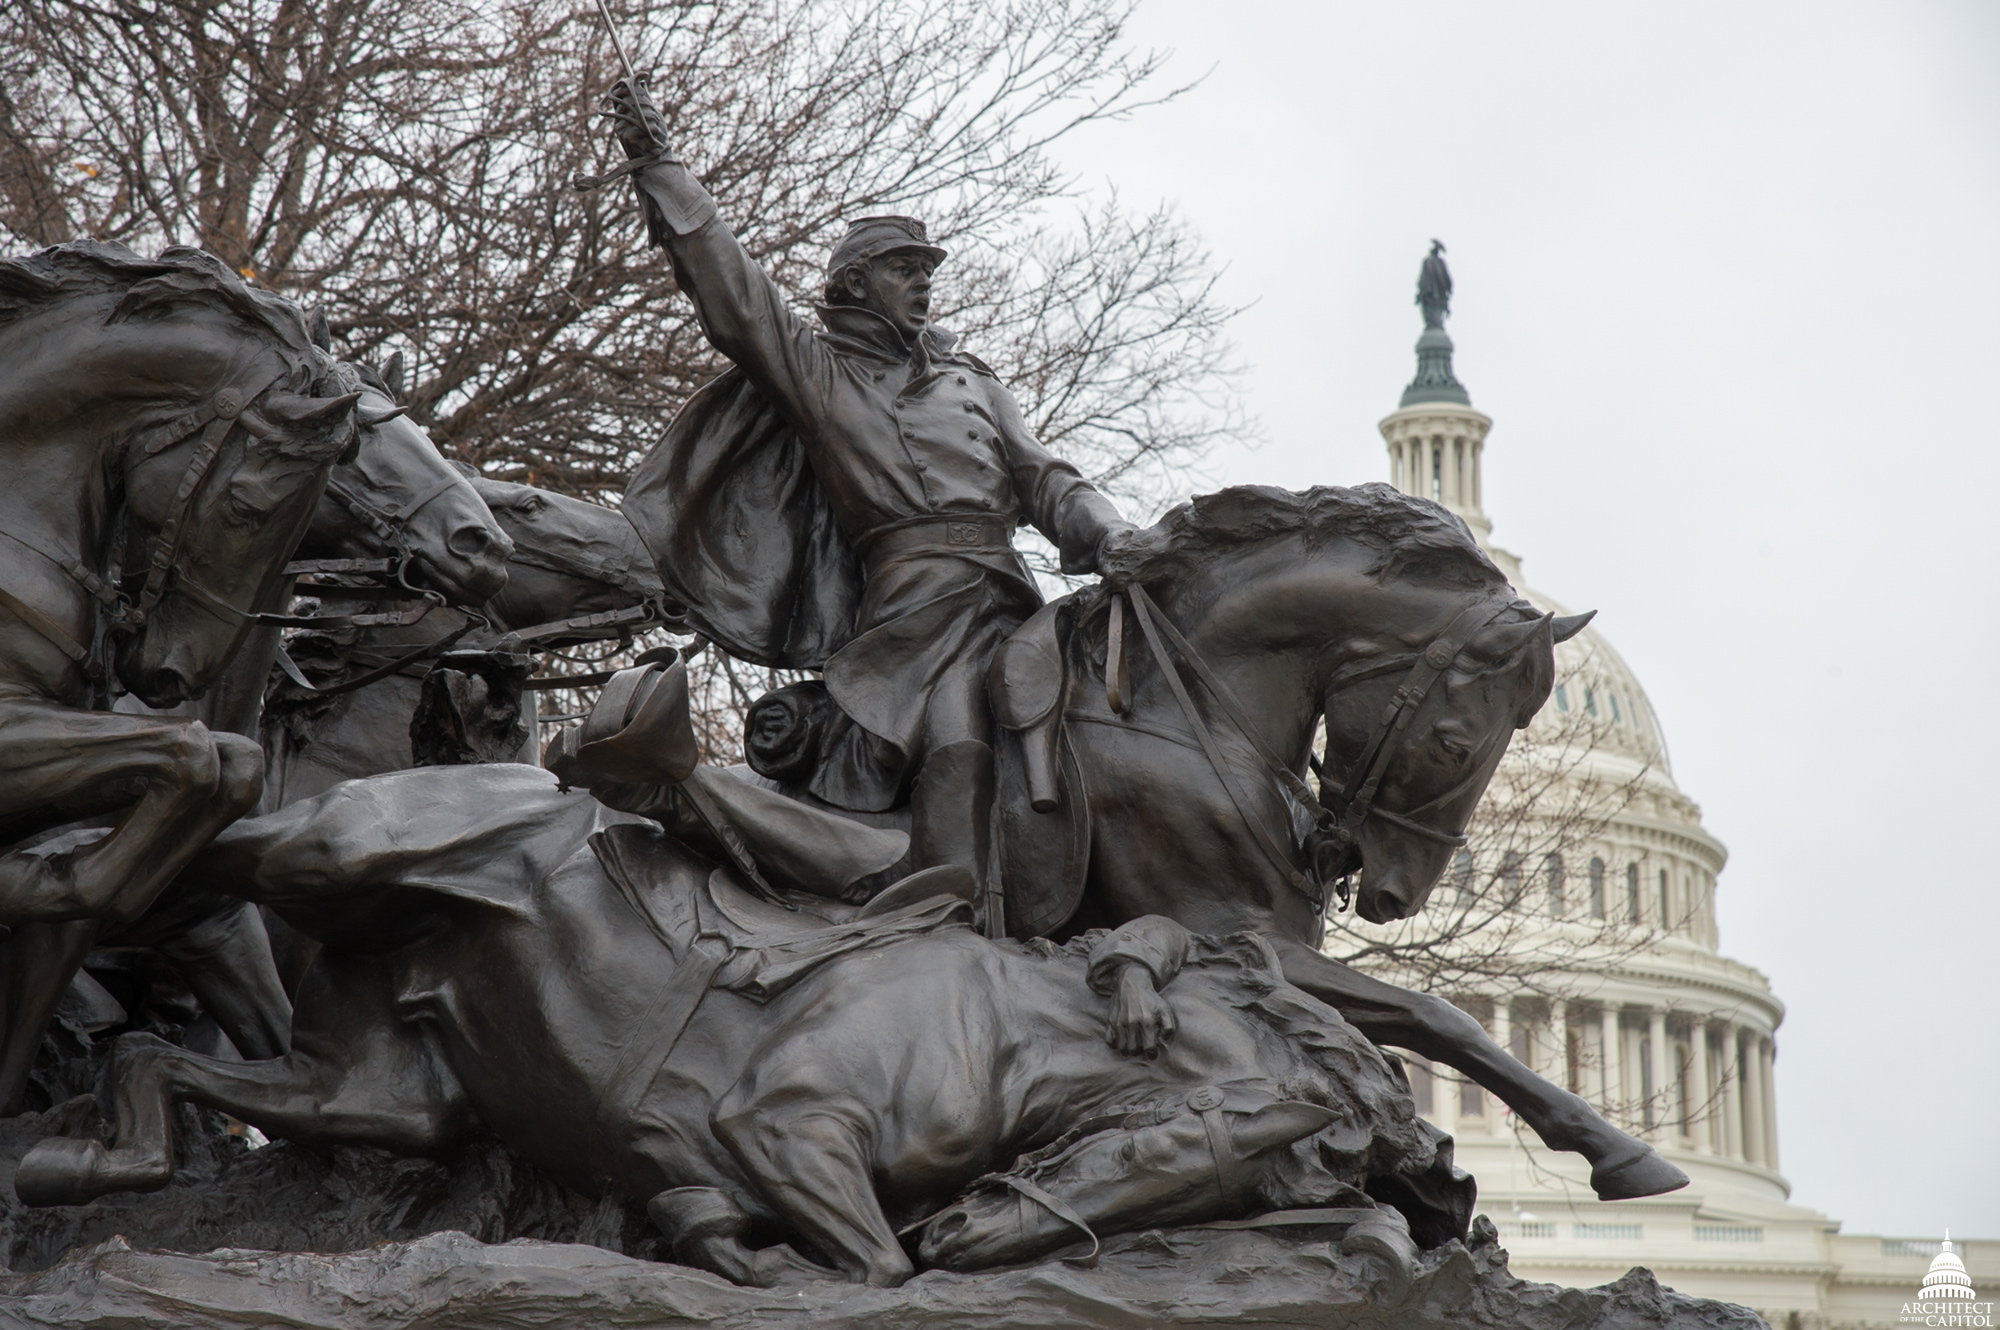 ulysses s grant memorial architect of the capitol united restored bronze of the grant memorial